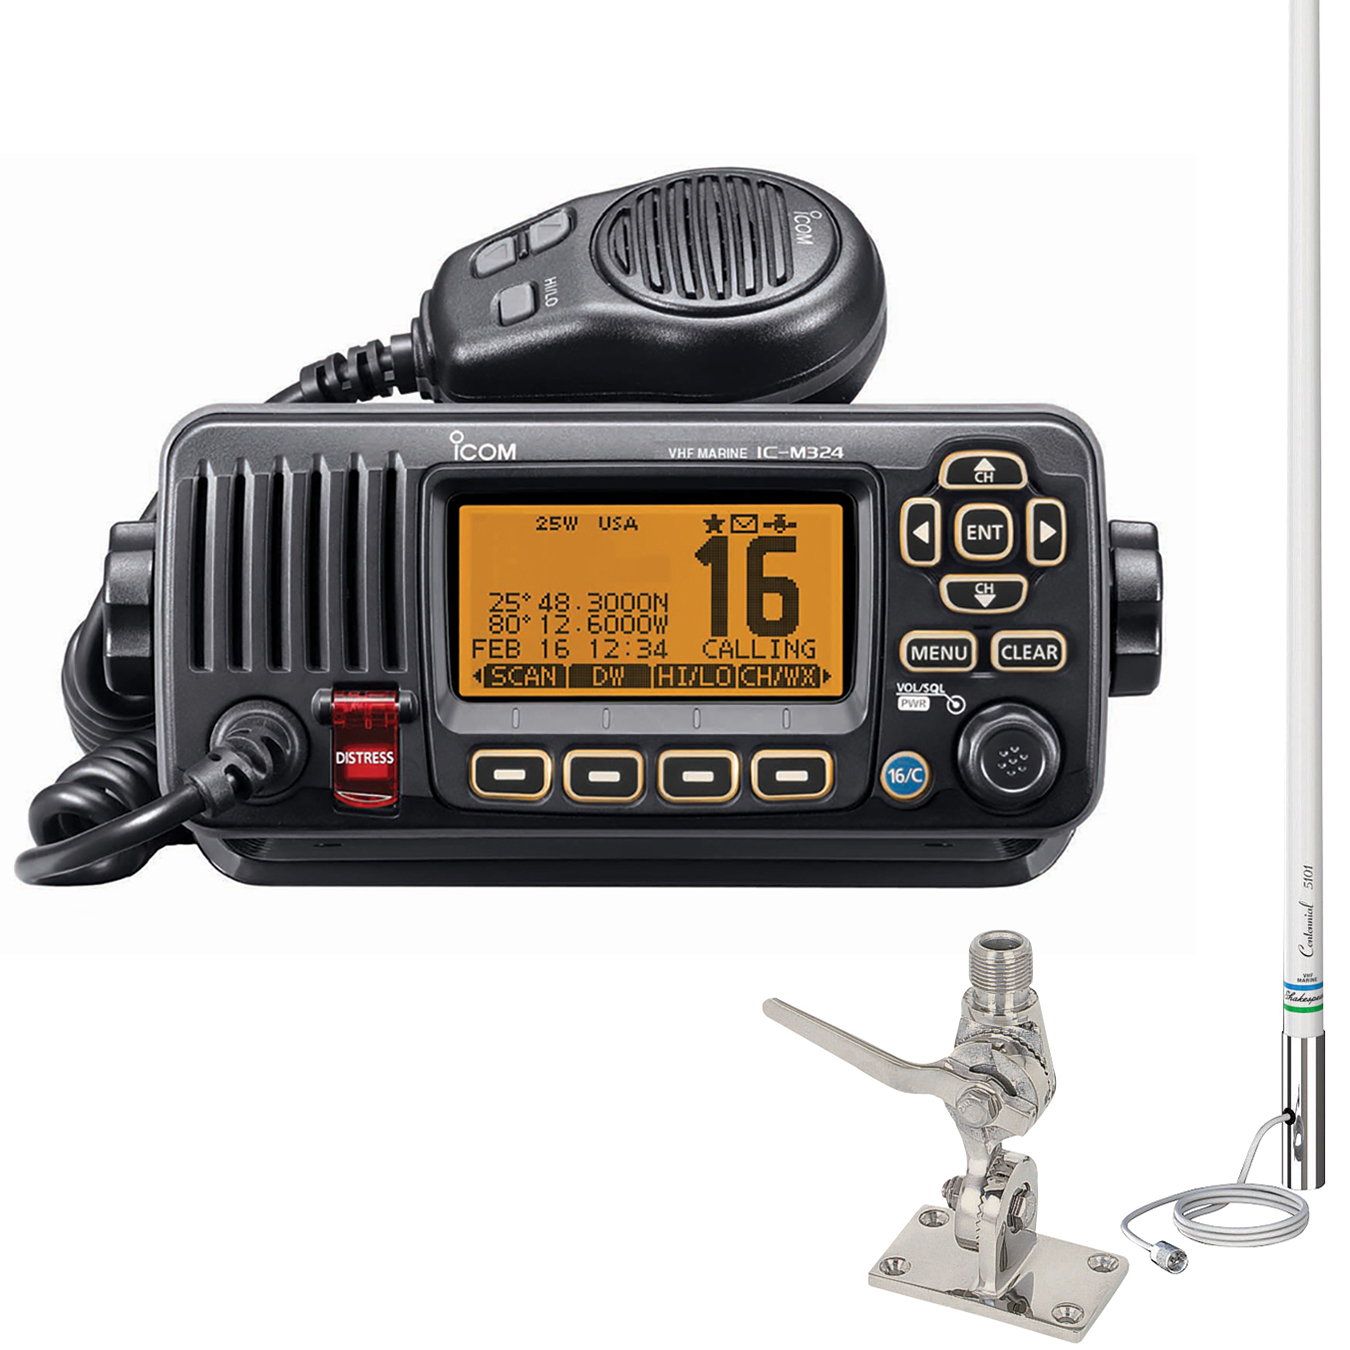 ICOM M324 VHF Marine Radio Package Black, w/5101 Classic 8' Antenna and SS Mount